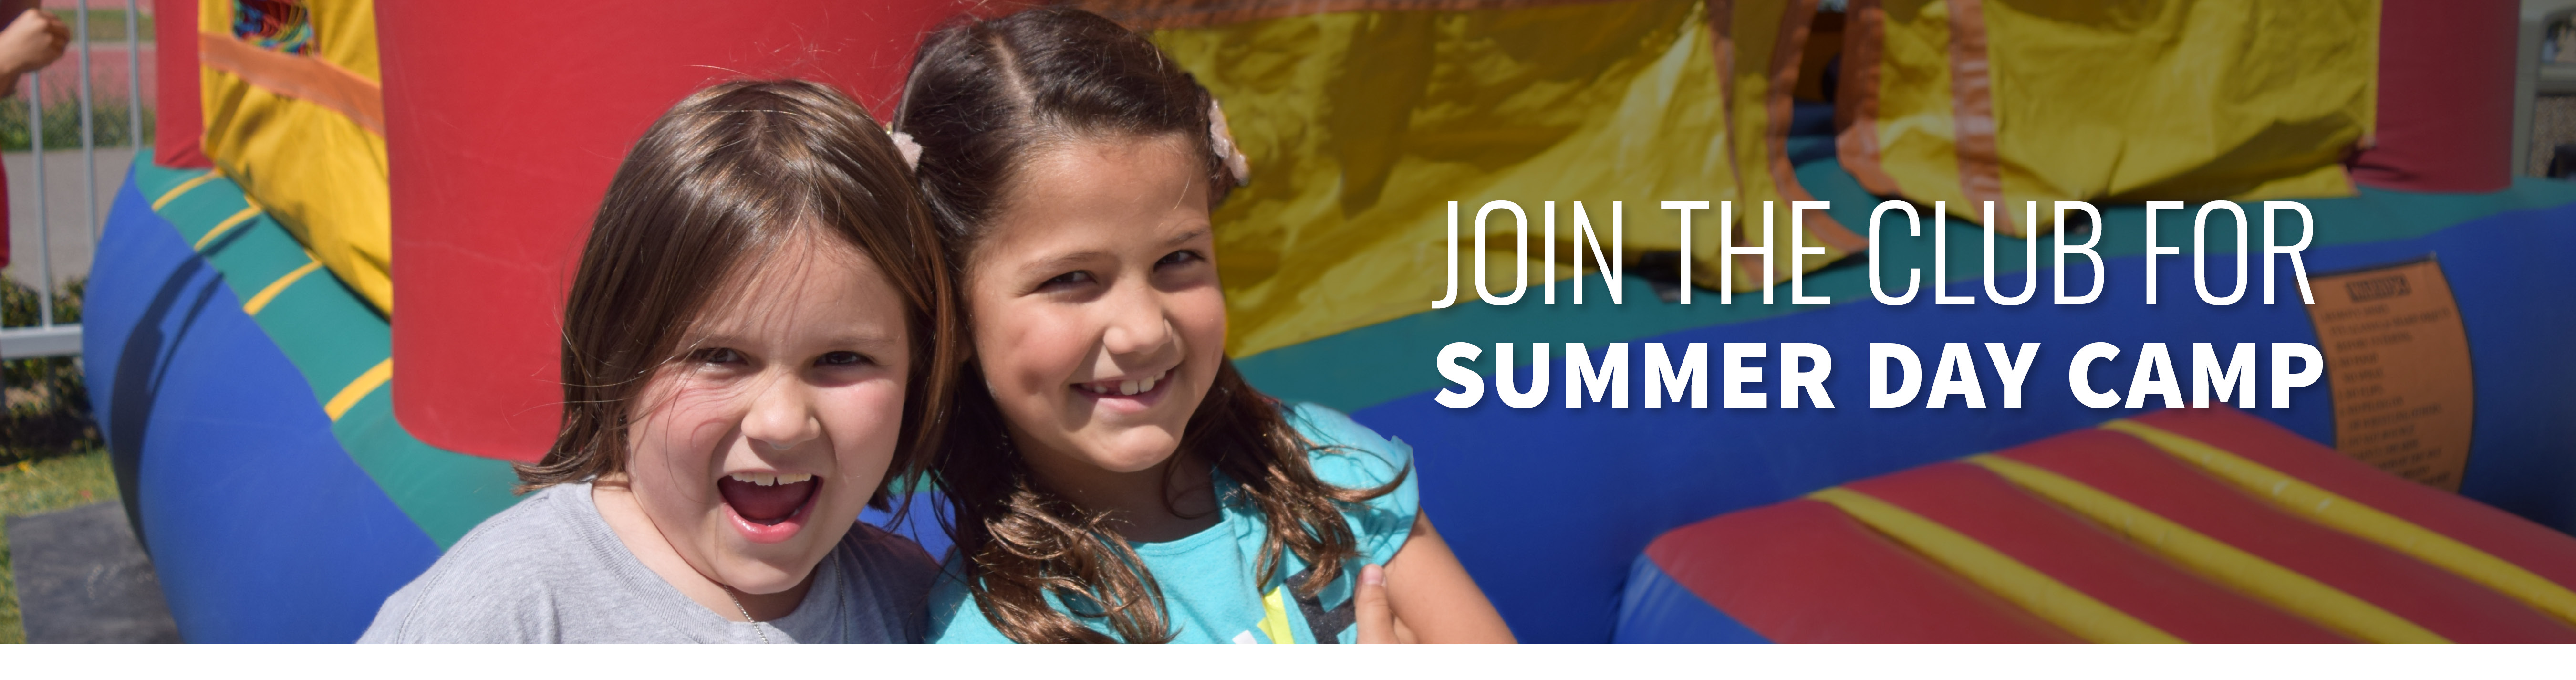 Our Programs Summer Camp Header Img